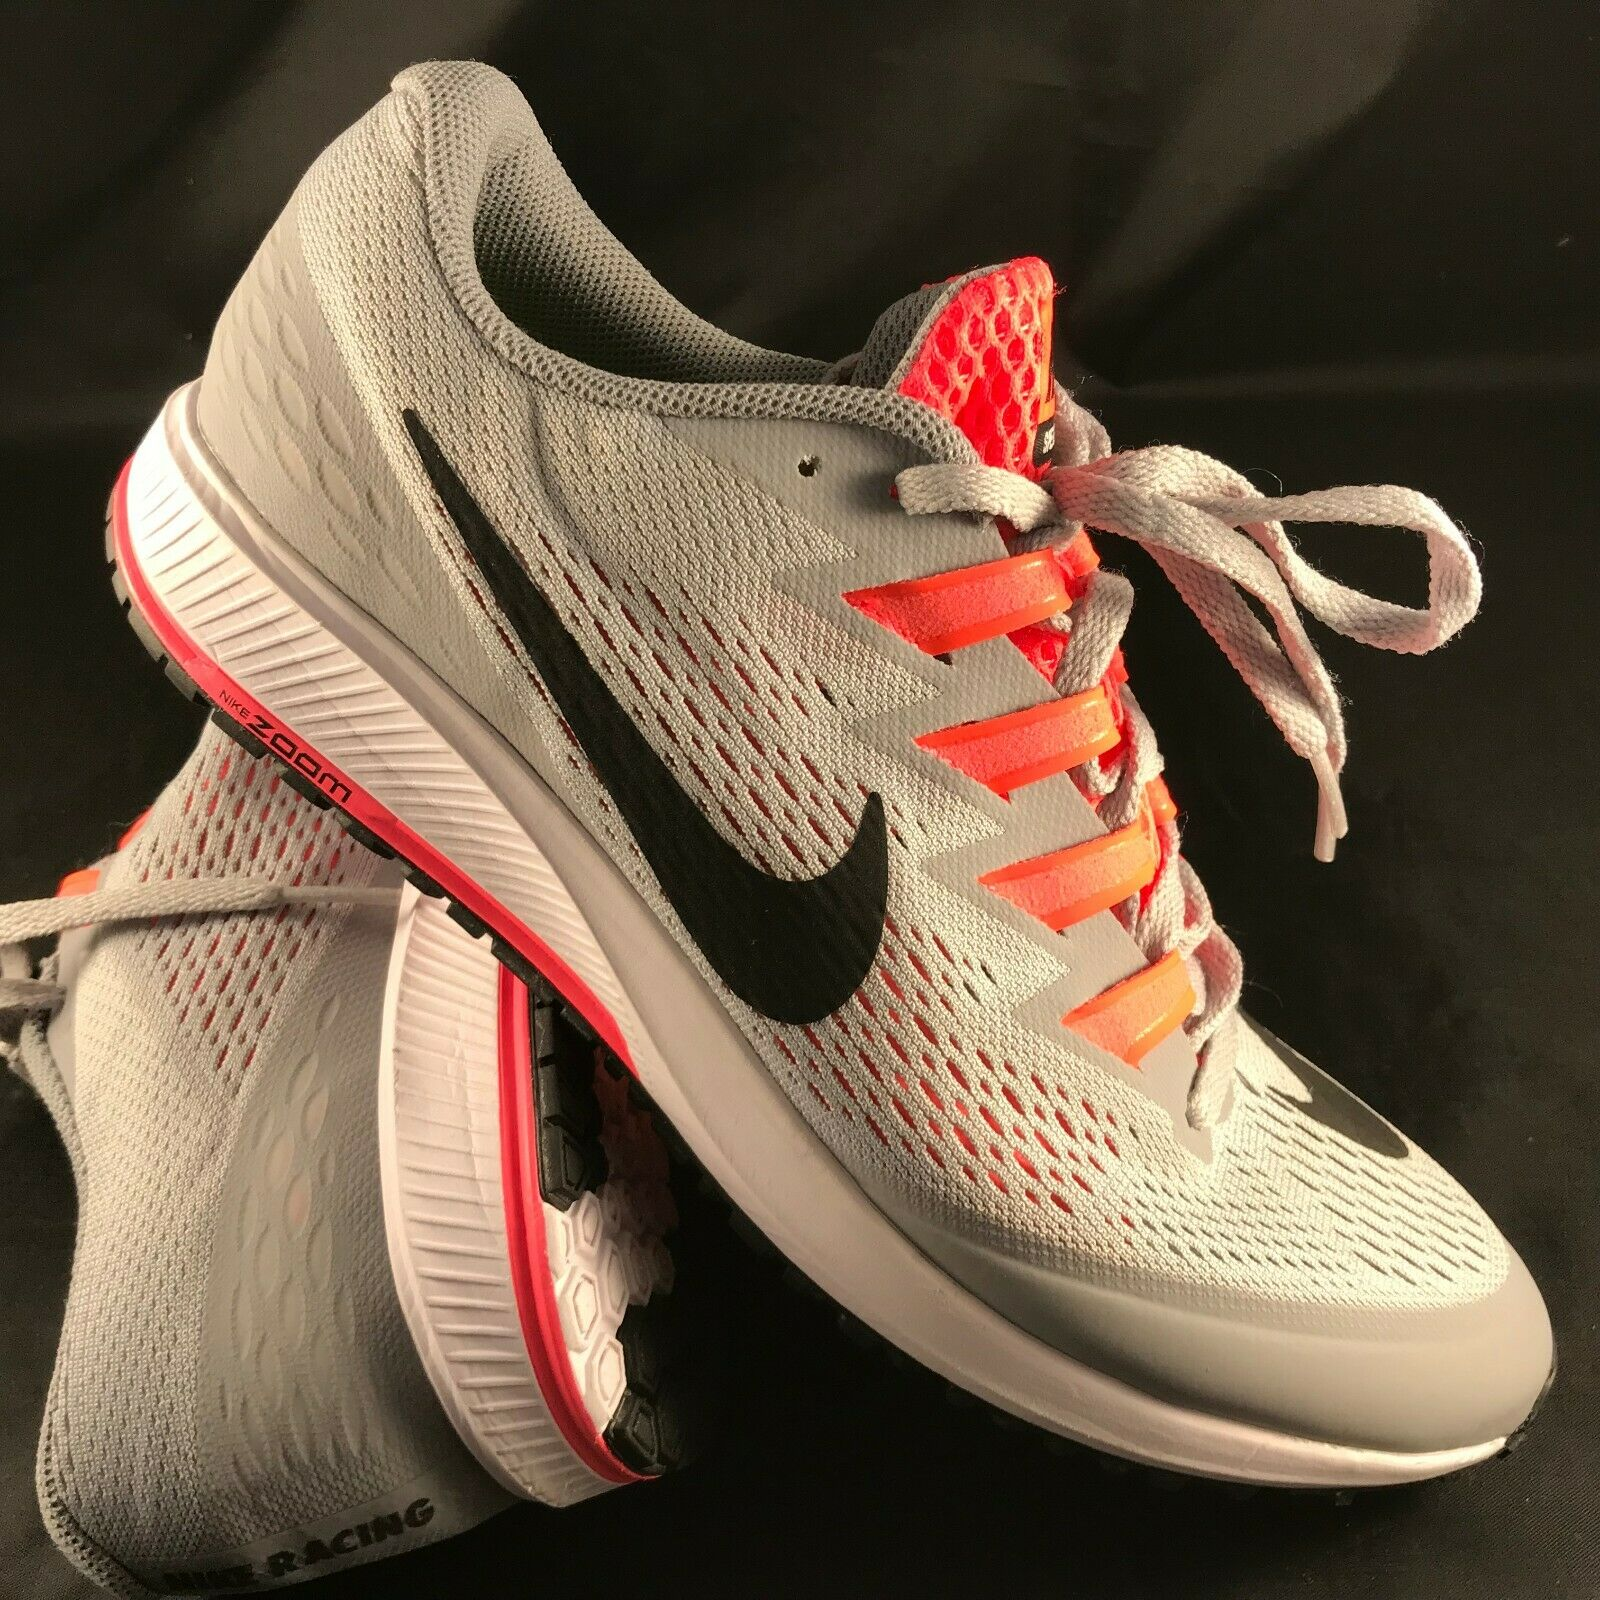 Nike Air Zoom Speed Rival 6 Mens Racing Running shoes 8.5 US, 42 EUR Wolf Grey